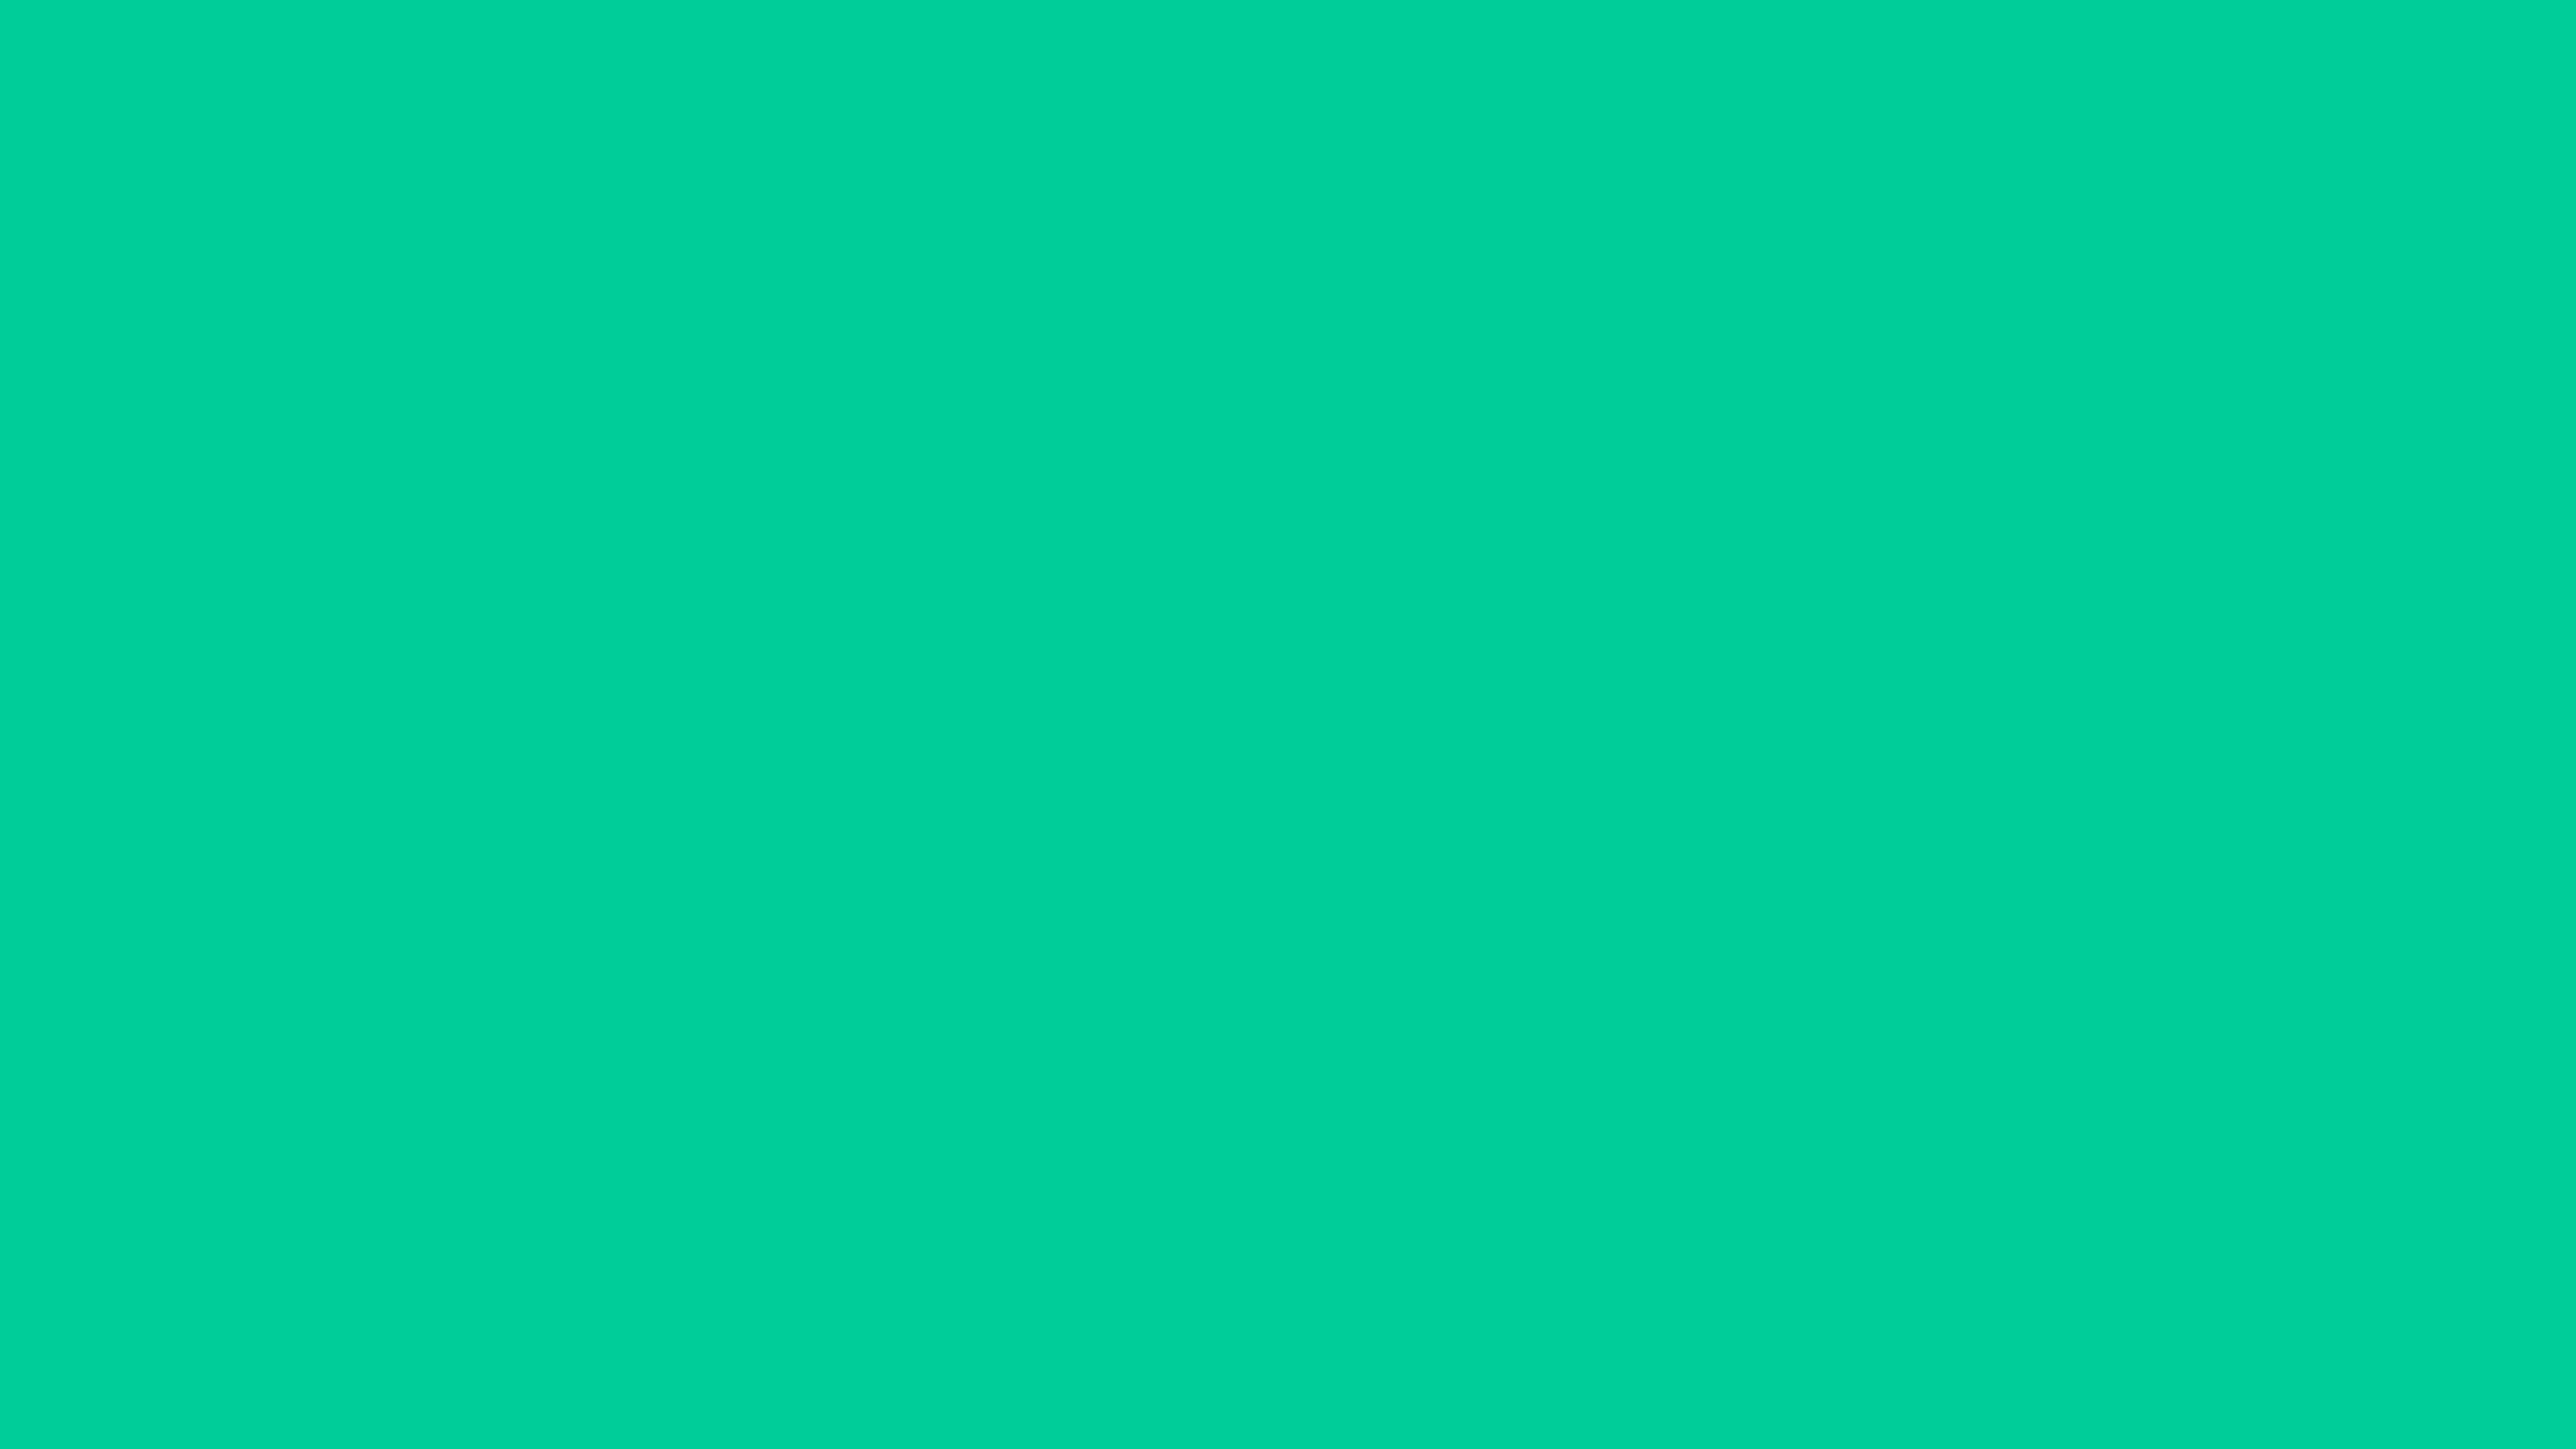 5120x2880 Caribbean Green Solid Color Background